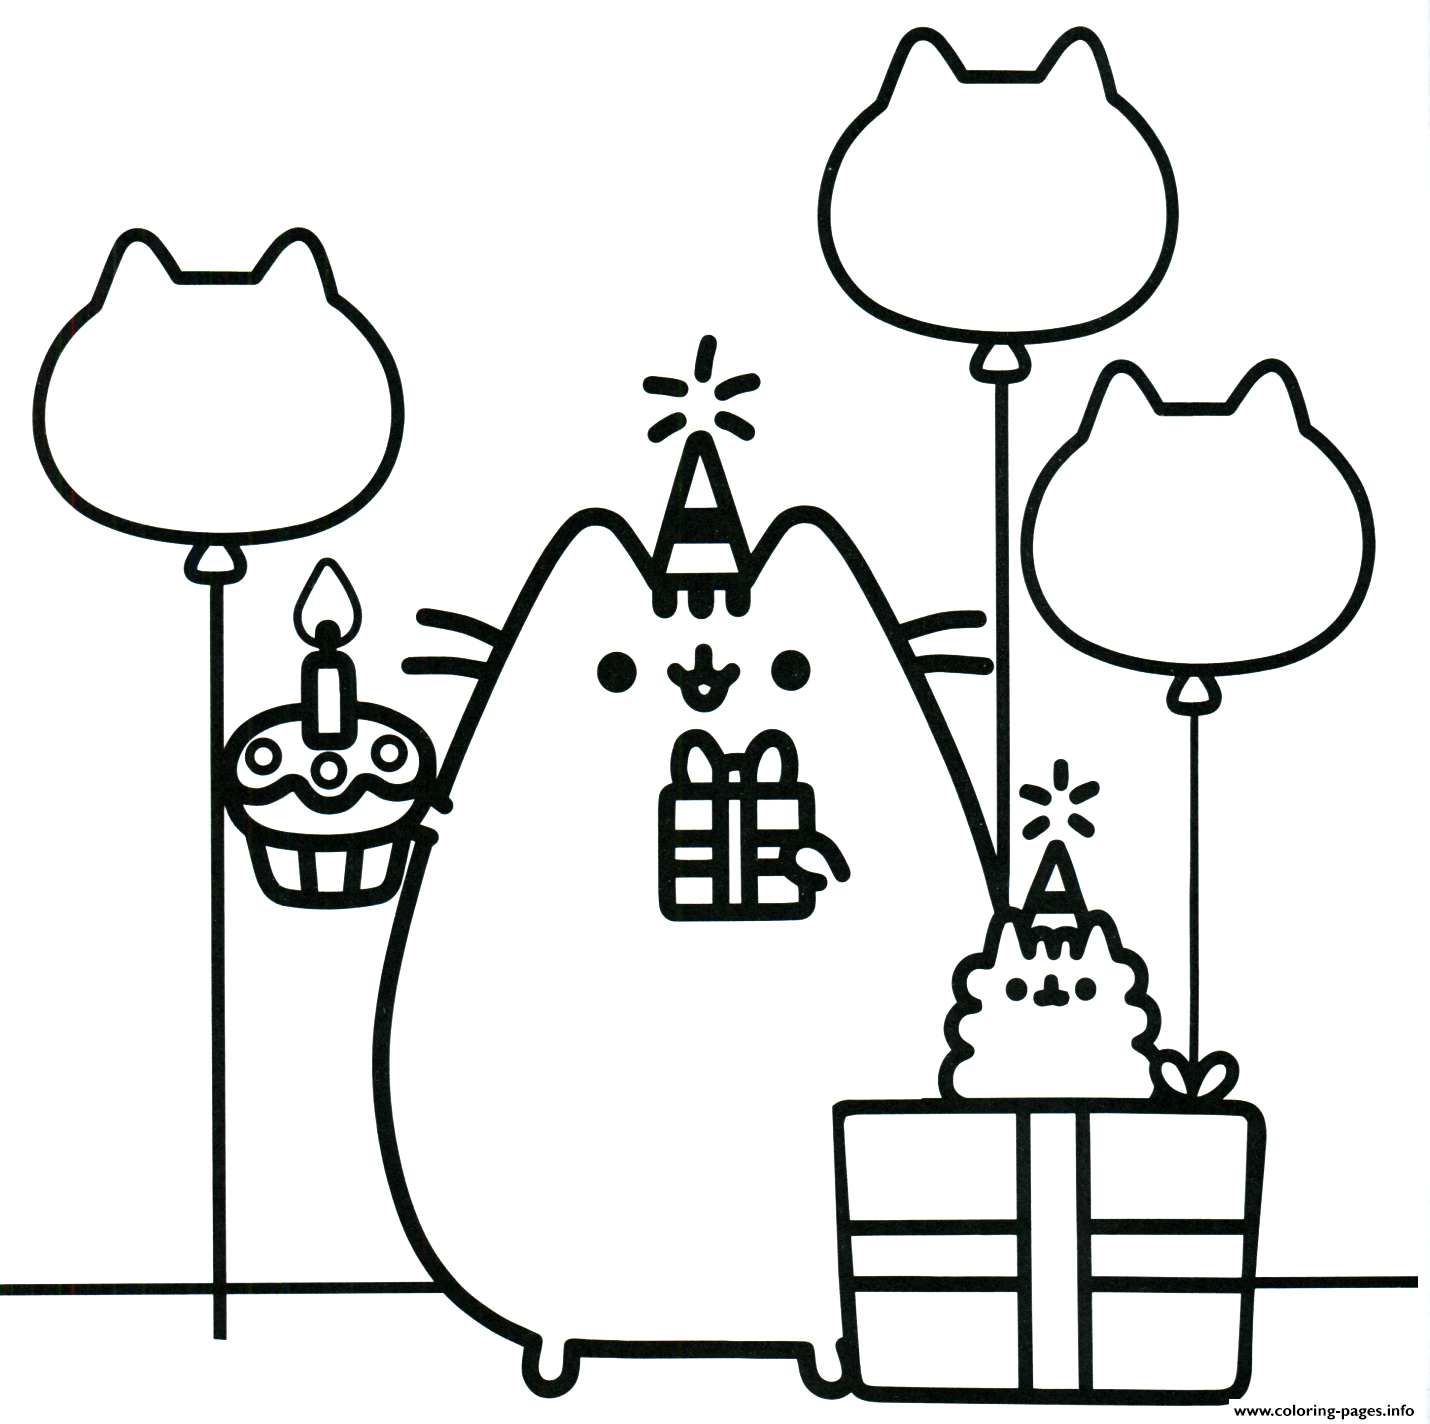 pusheen coloring pages printable Pusheen The Cat Party Coloring Pages Printable pusheen coloring pages printable